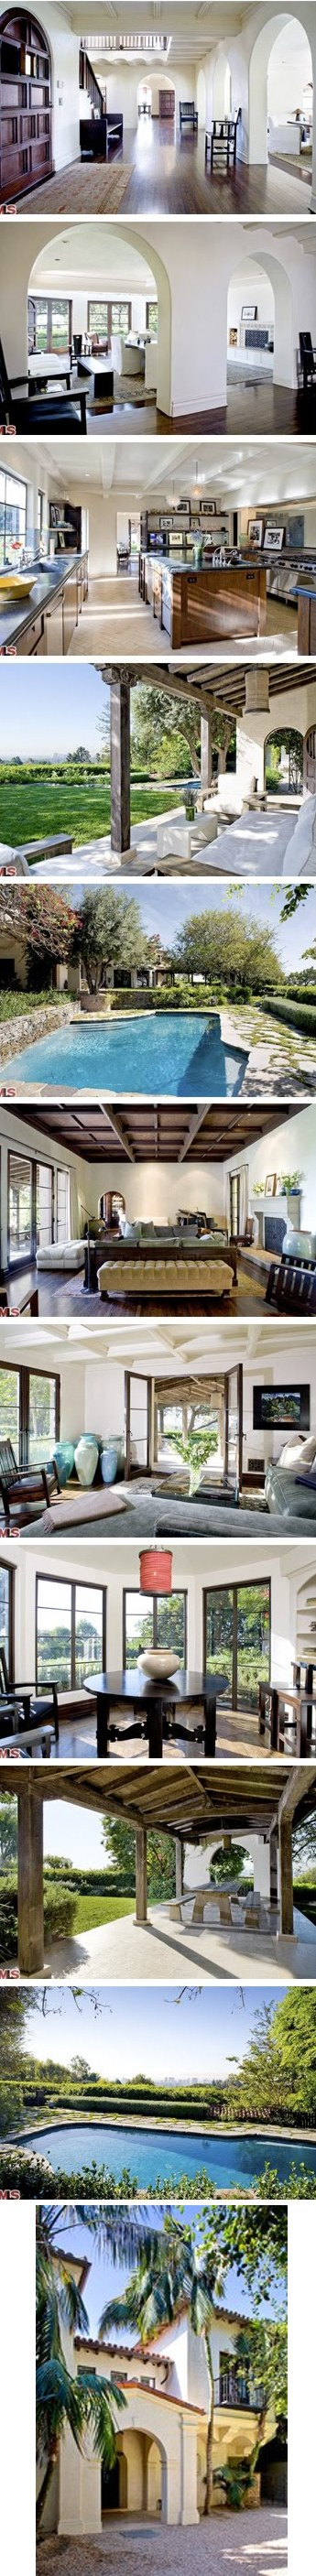 meg ryan bel air house